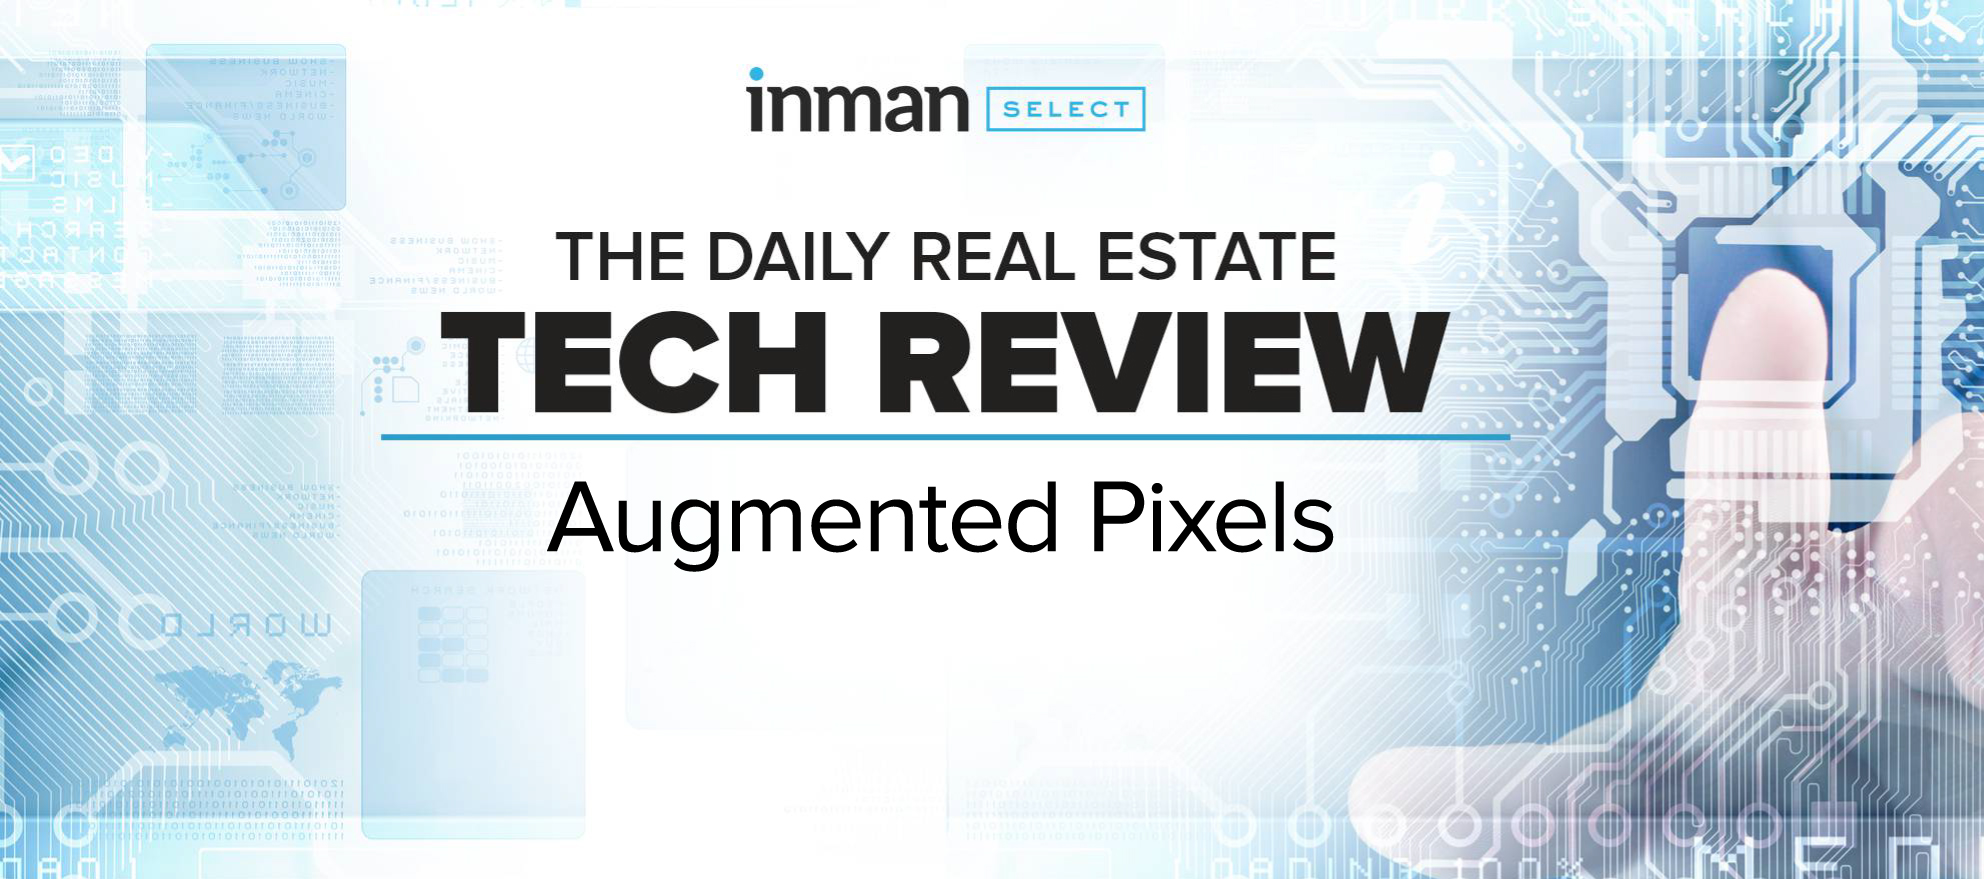 Can virtual reality player Augmented Pixels strengthen your sales?